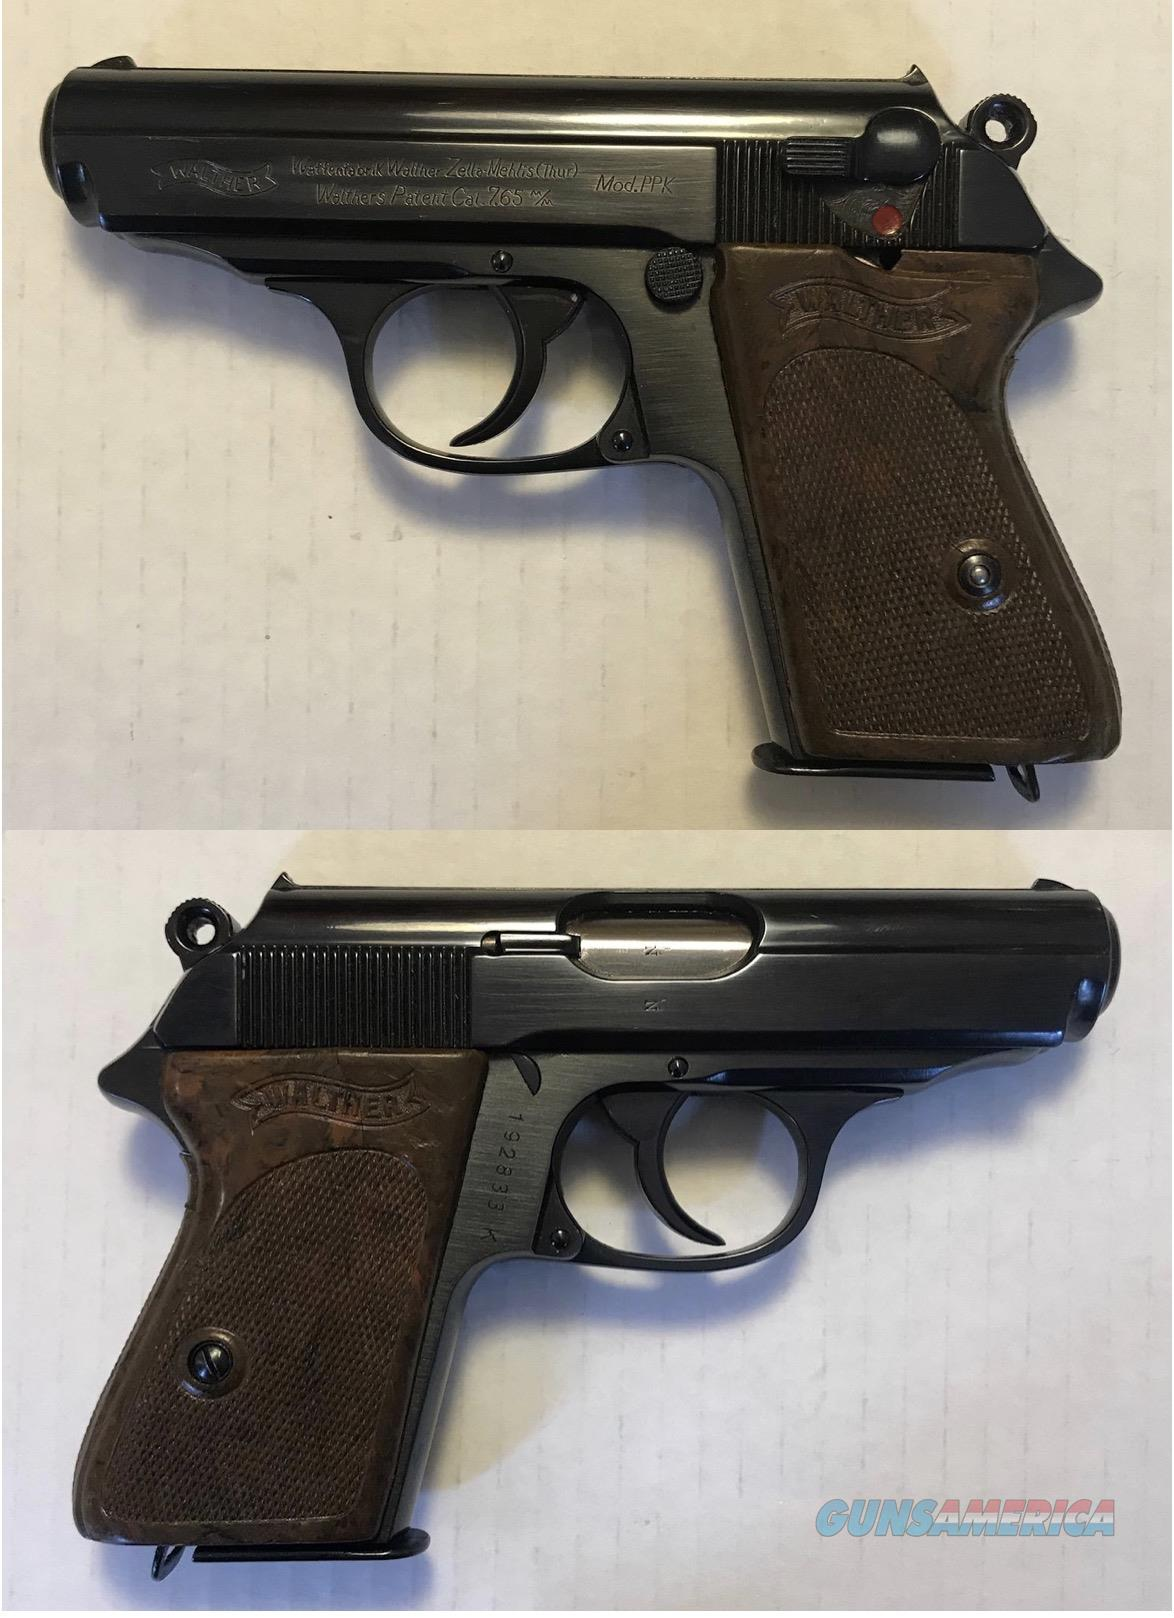 German Walther PPK 7.65mm .32acp pre 1945 C&R  Guns > Pistols > Walther Pistols > Pre-1945 > PPK